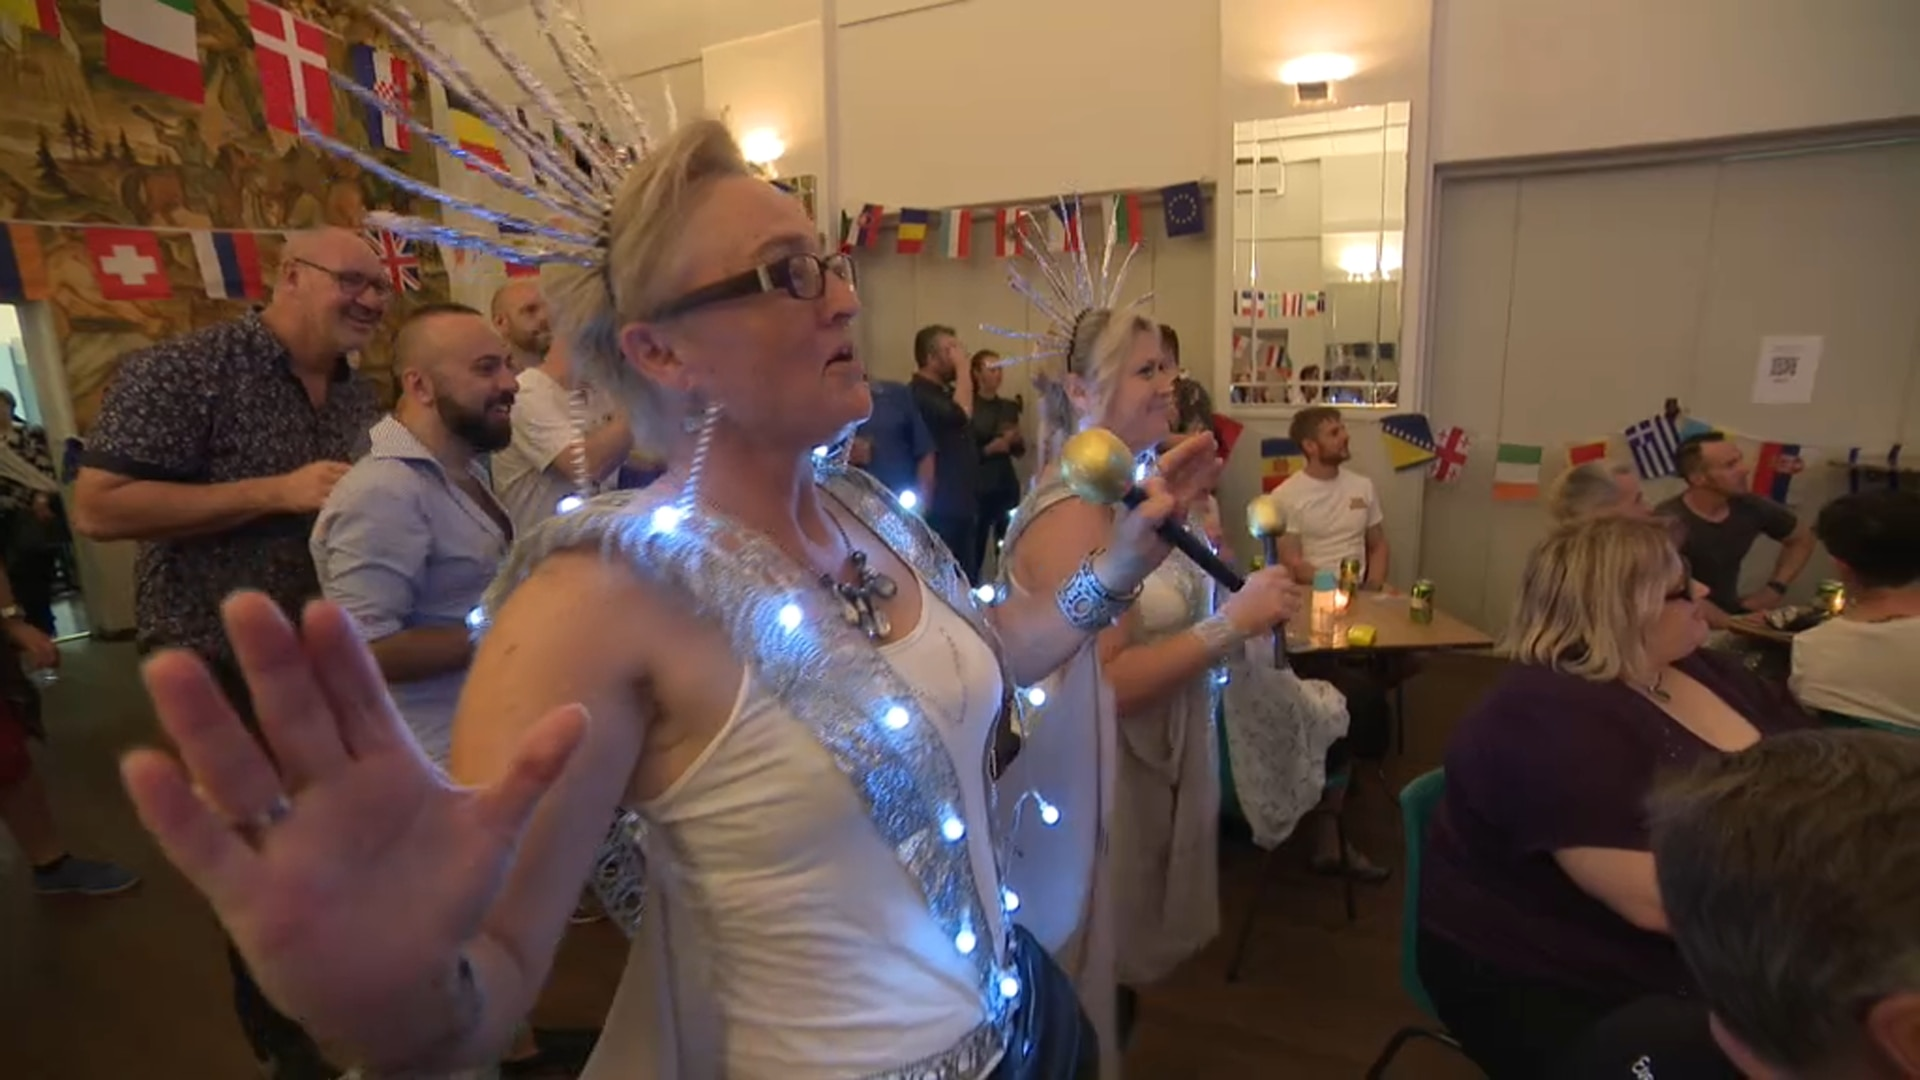 Eurovision fans dance to Kate Miller-Heidke's 'Zero Gravity' at a preview party in Sydney.